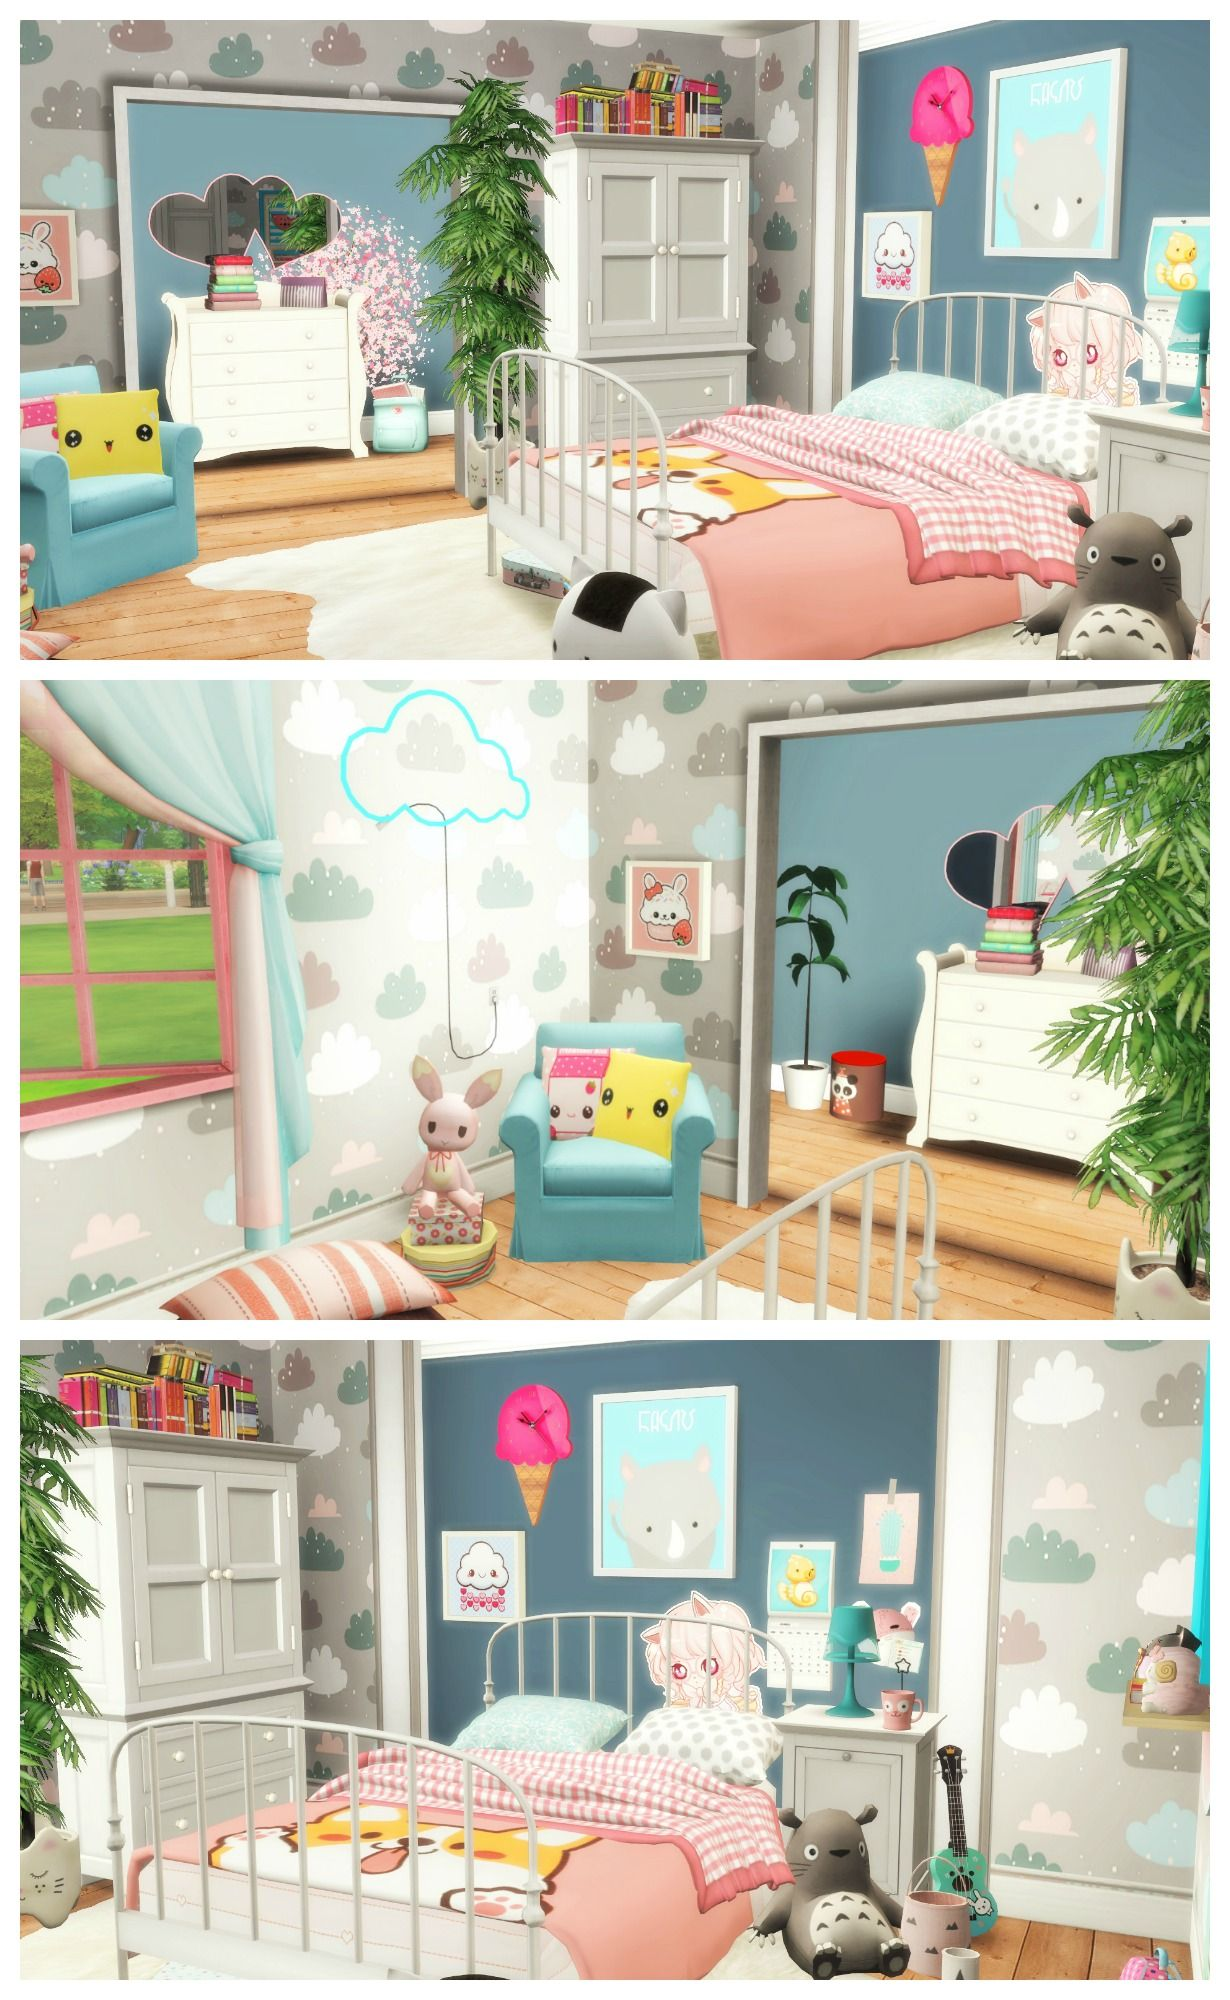 Sims 4 kawaii bedroom room build custom content list